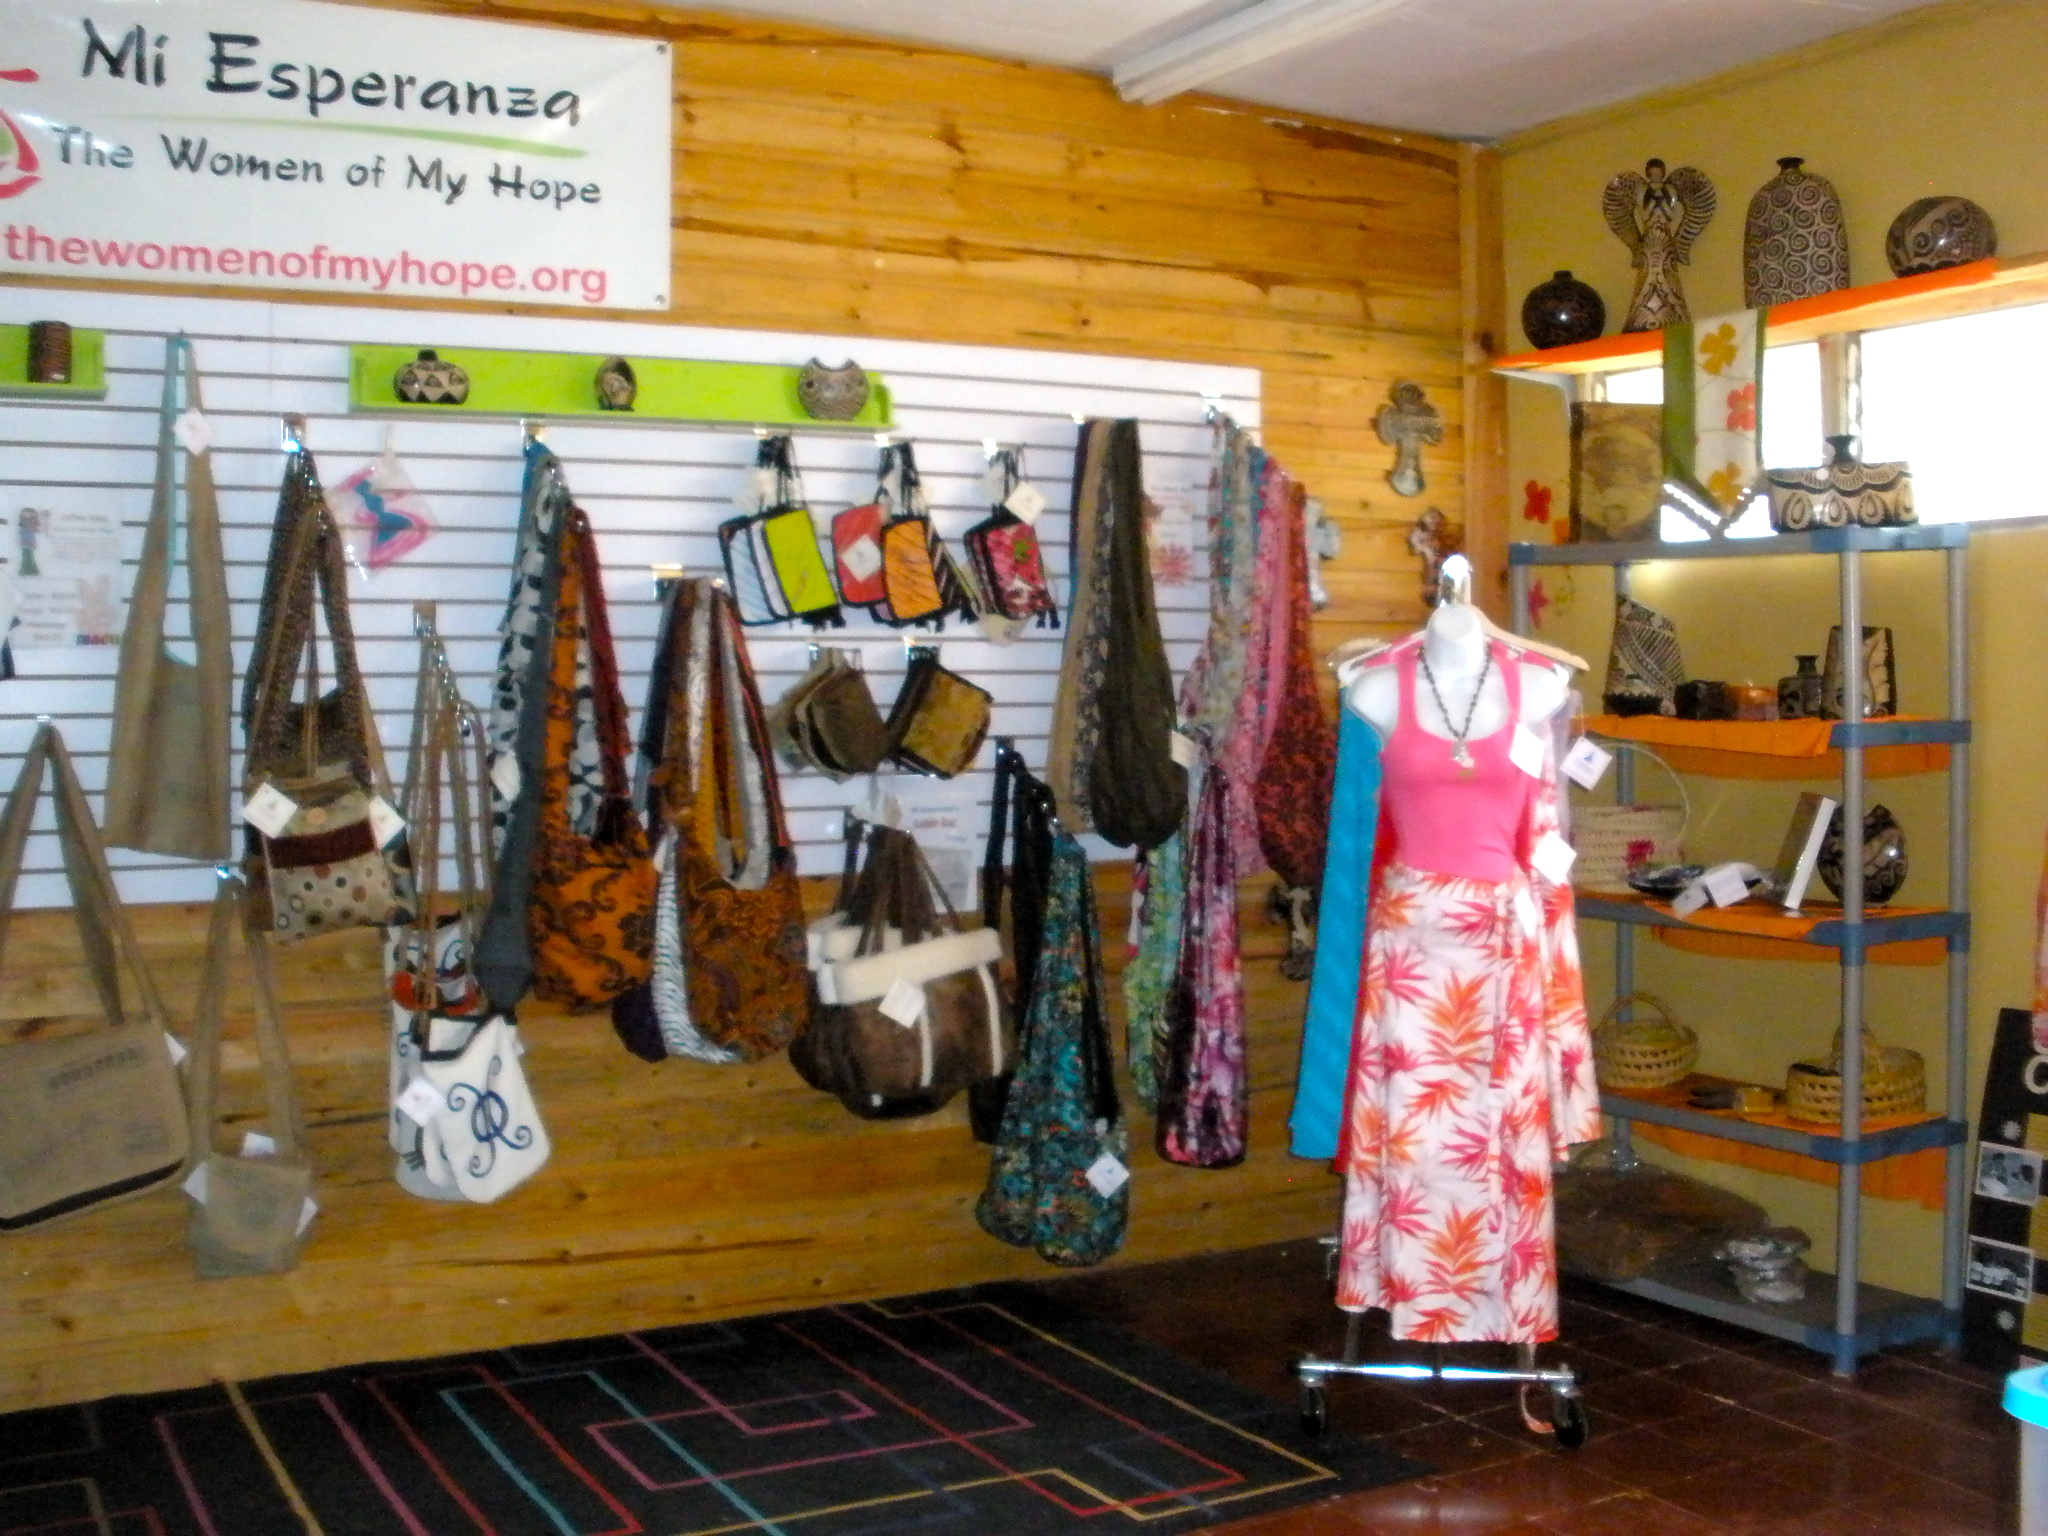 PURCHASE WITH A PURPOSE at the Mi Esperanza store.